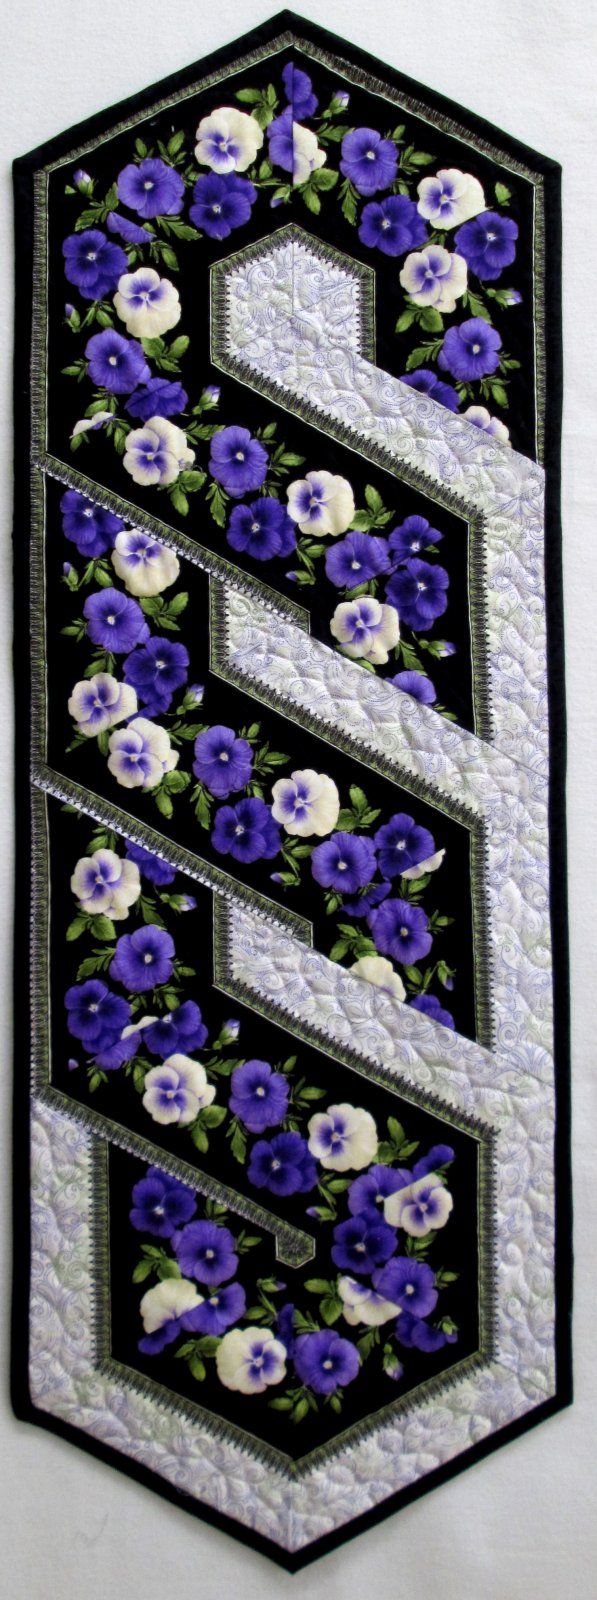 Accent on Pansies Triangle Frenzy Swirl Table Runner Kit